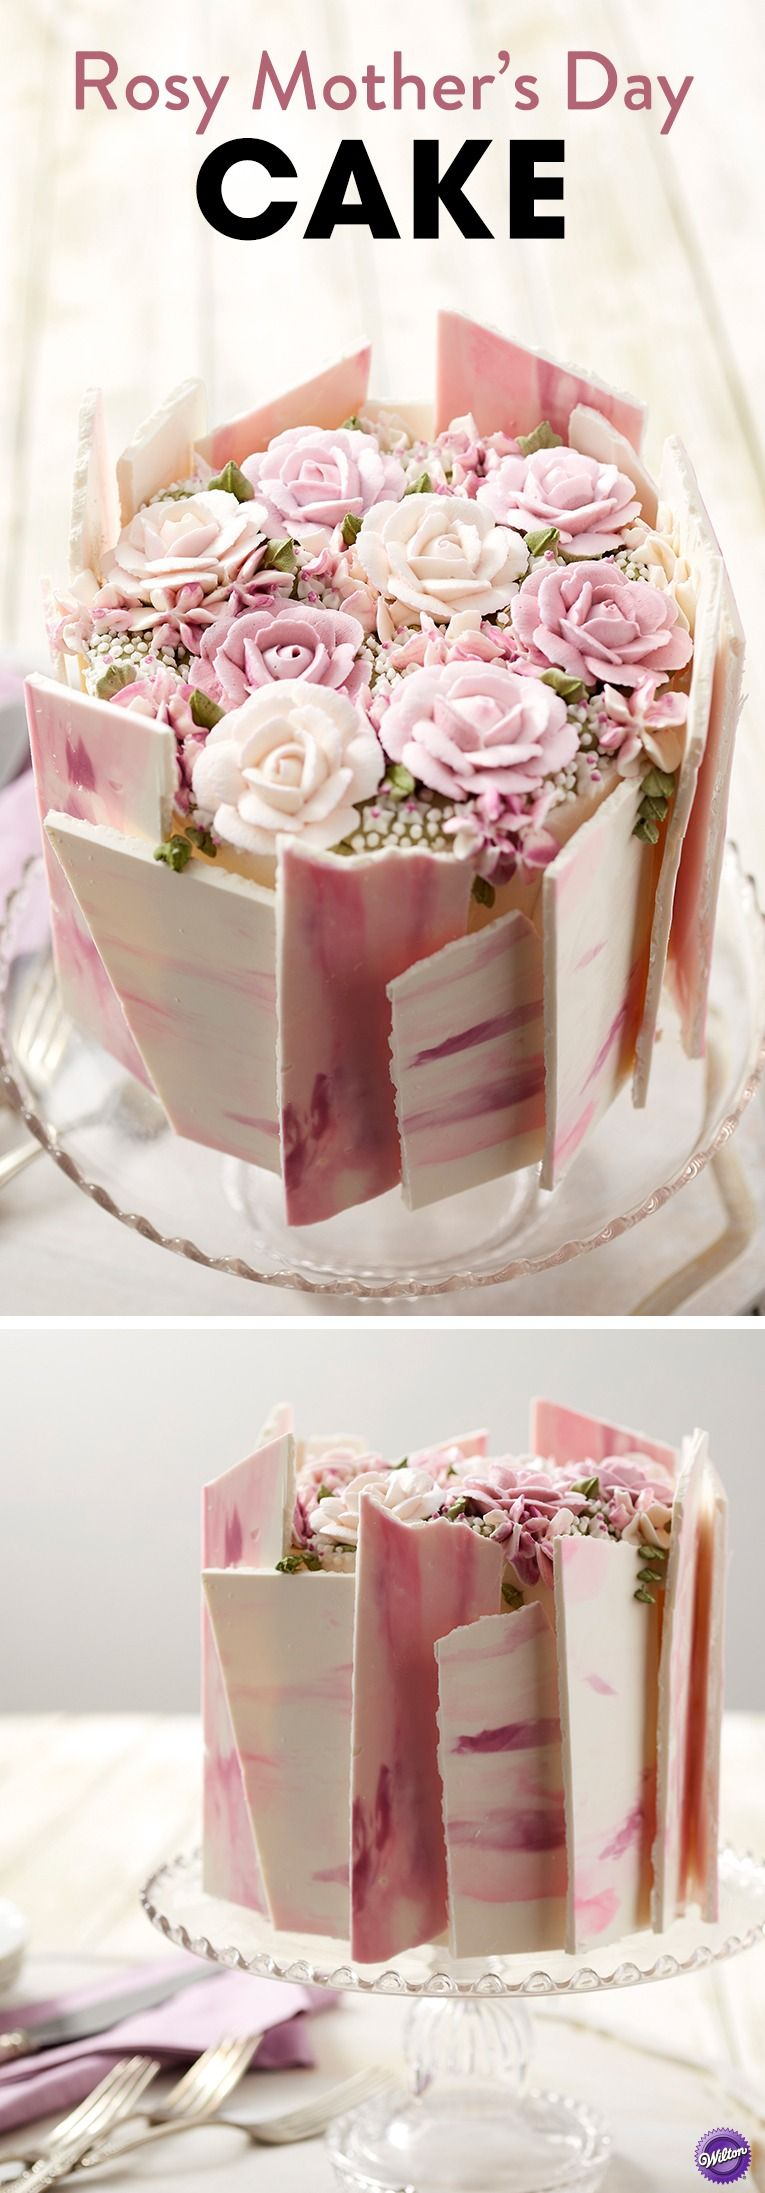 Rosy Mother's Day Cake